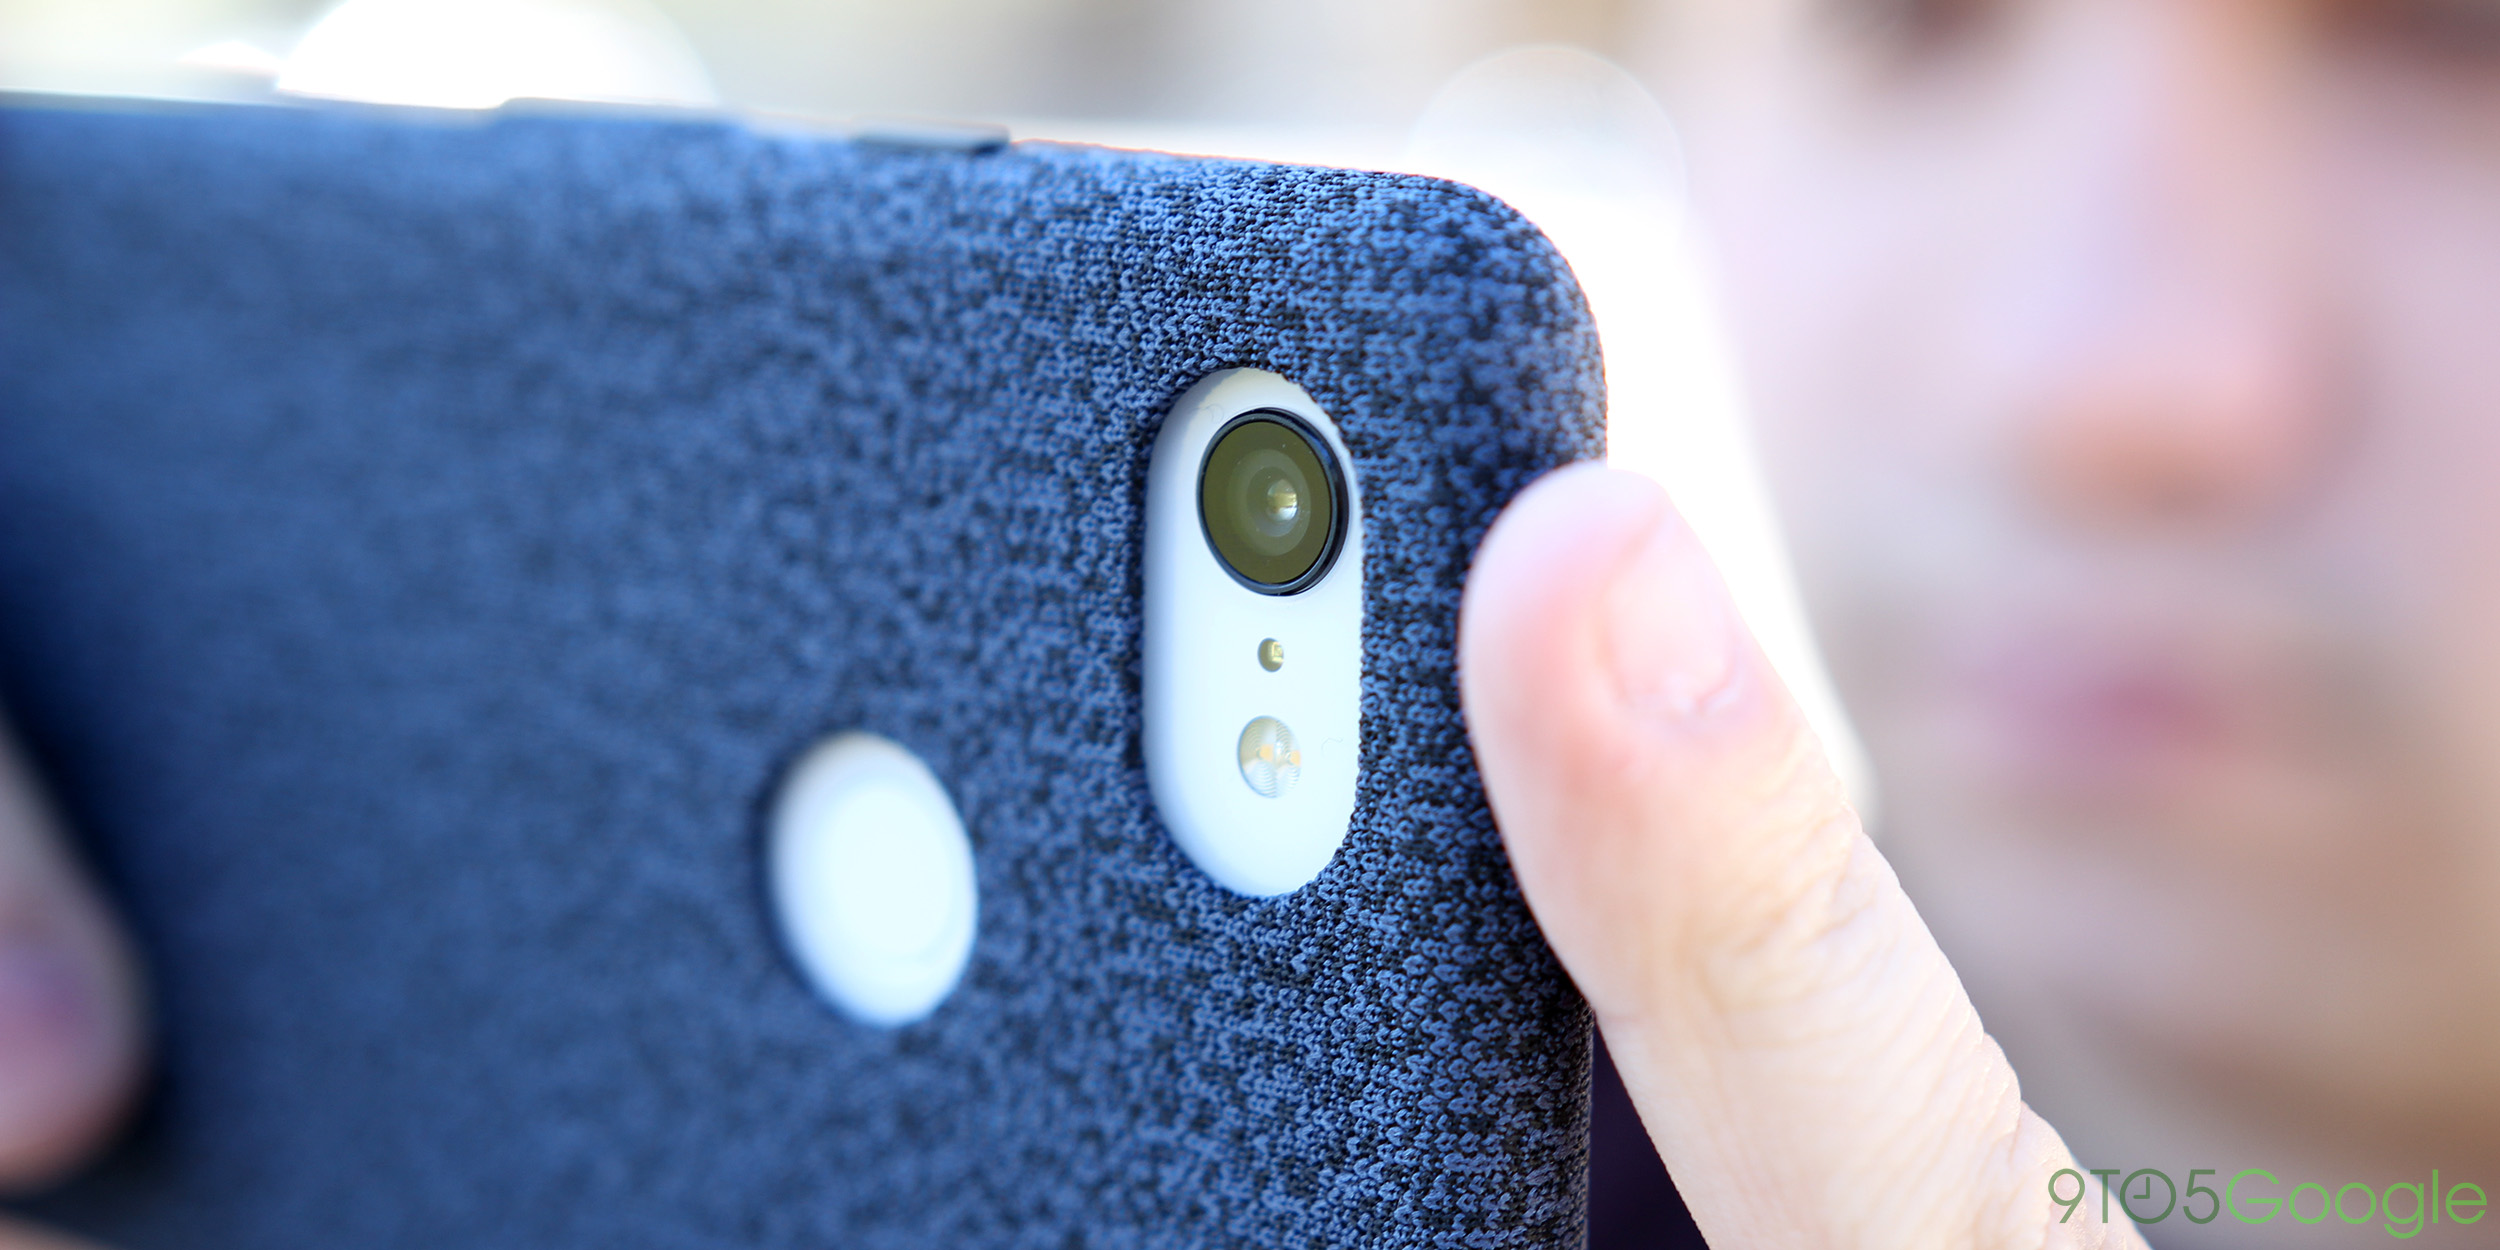 all google pixel devices will be updated soon to fix camera bug that doesn t save photos